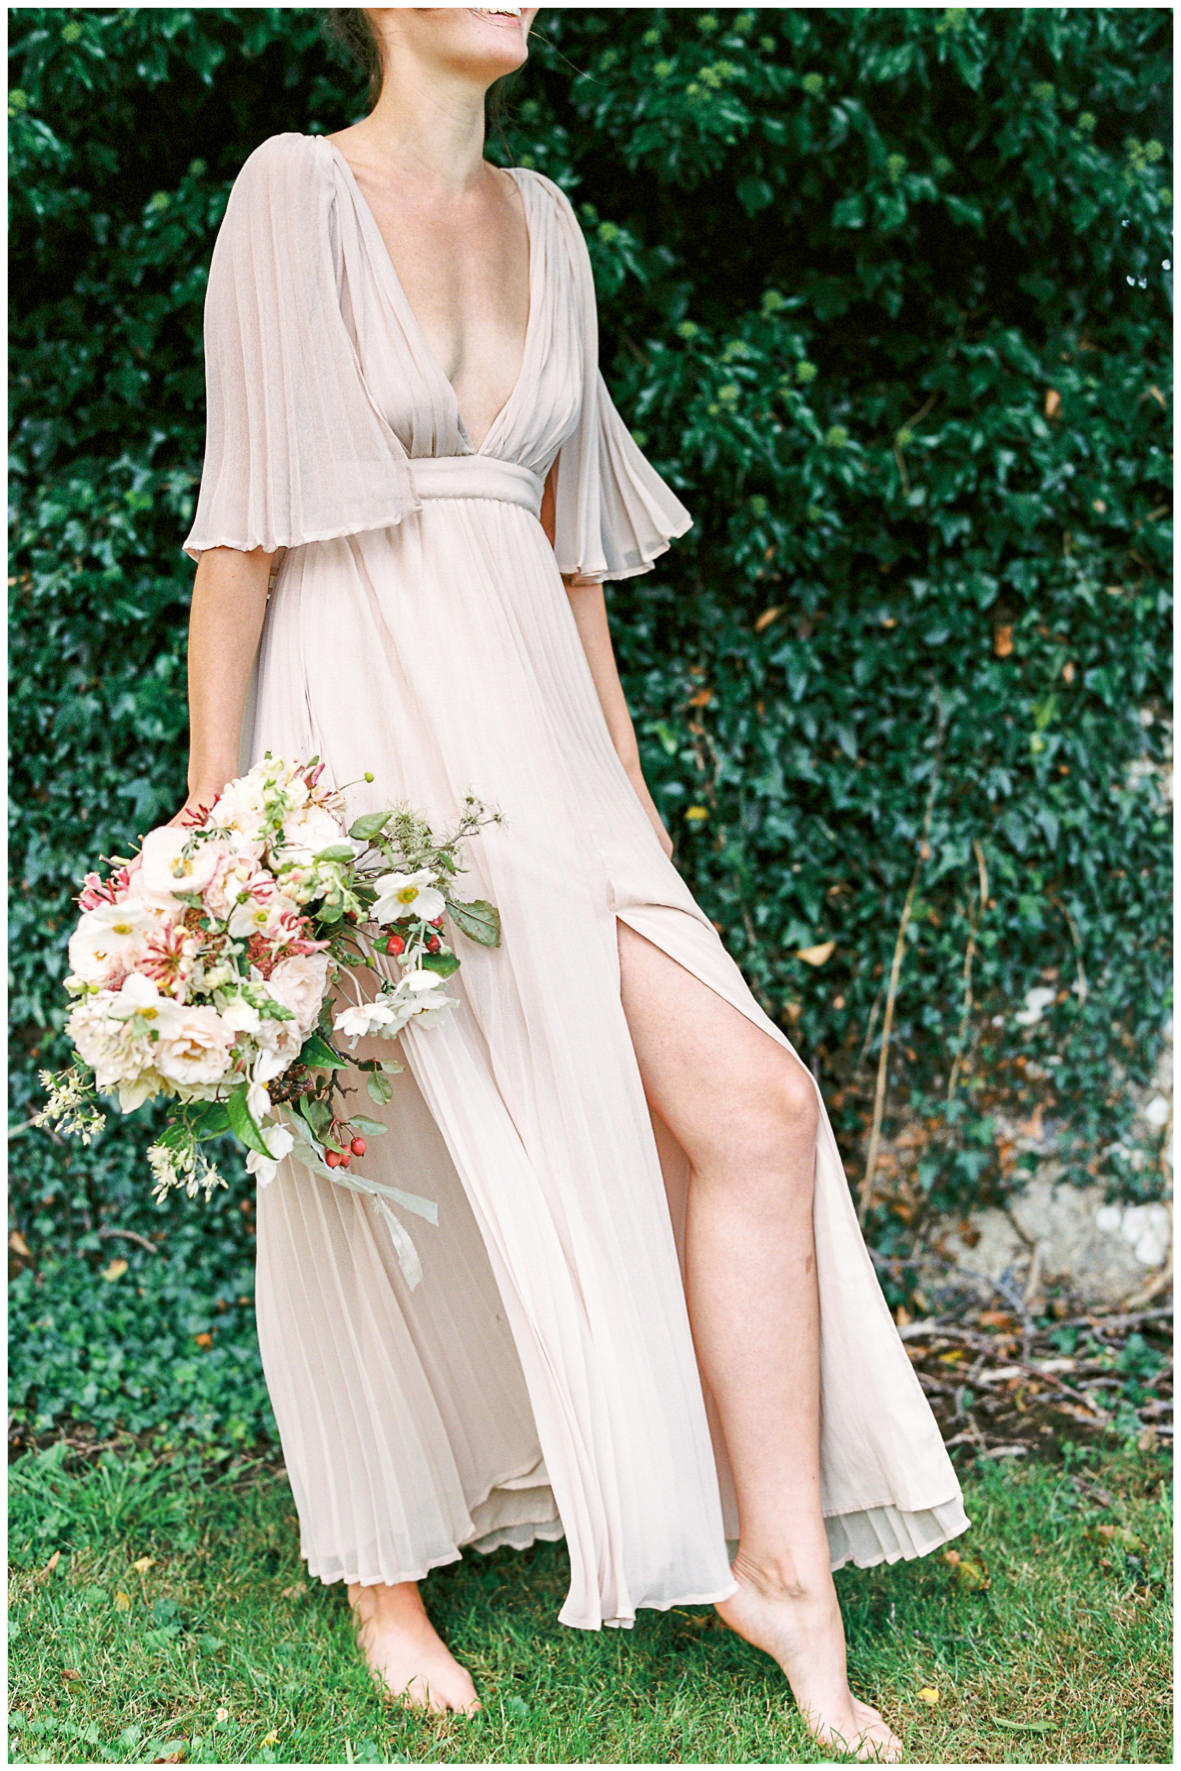 Lucy Davenport Photography, Once Wed, Home Creations, The Wedding Stylist, Verity & Thyme, coloured dress